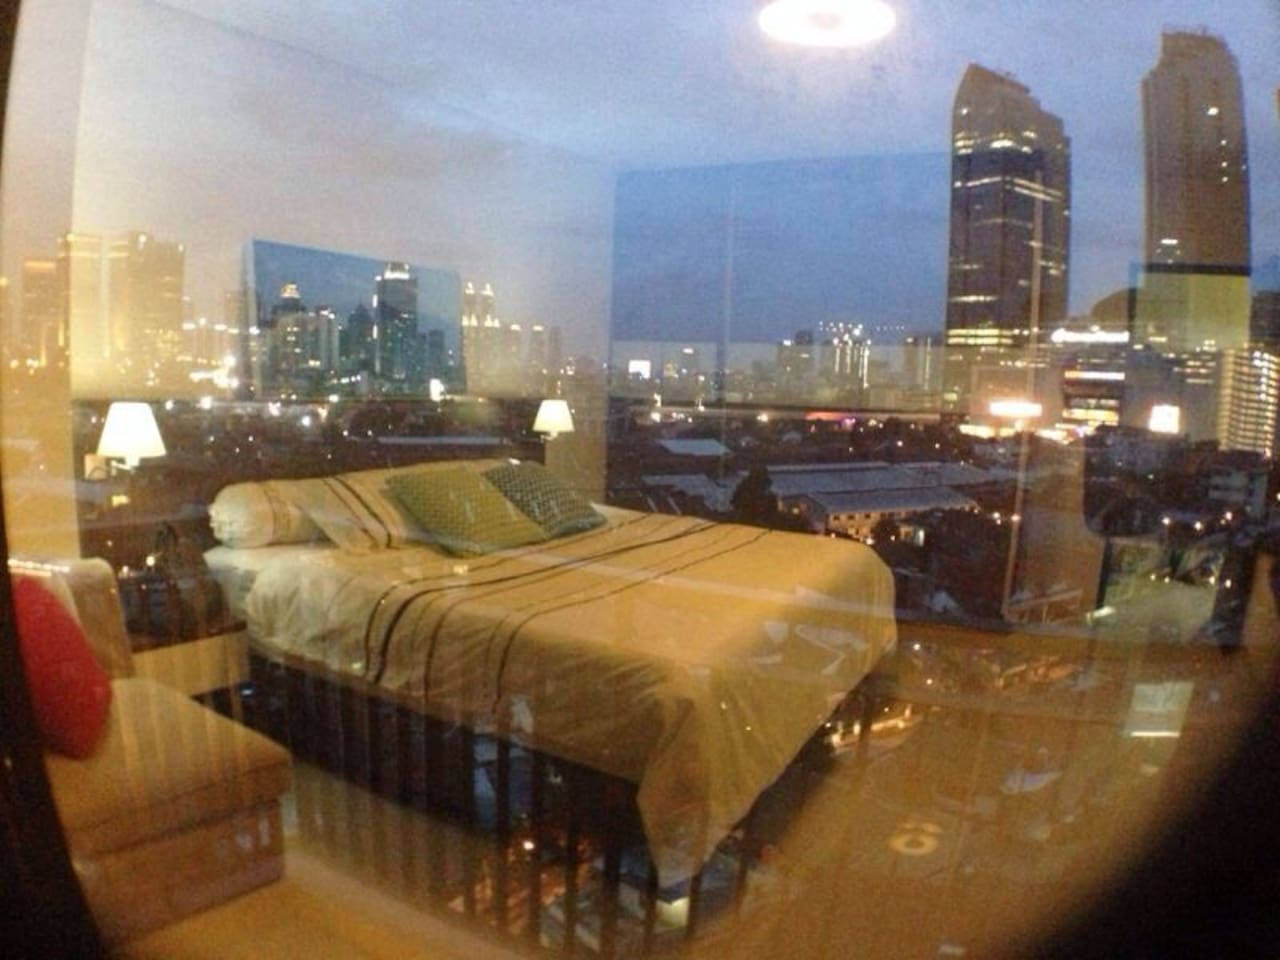 city view and reflection of the bedroom